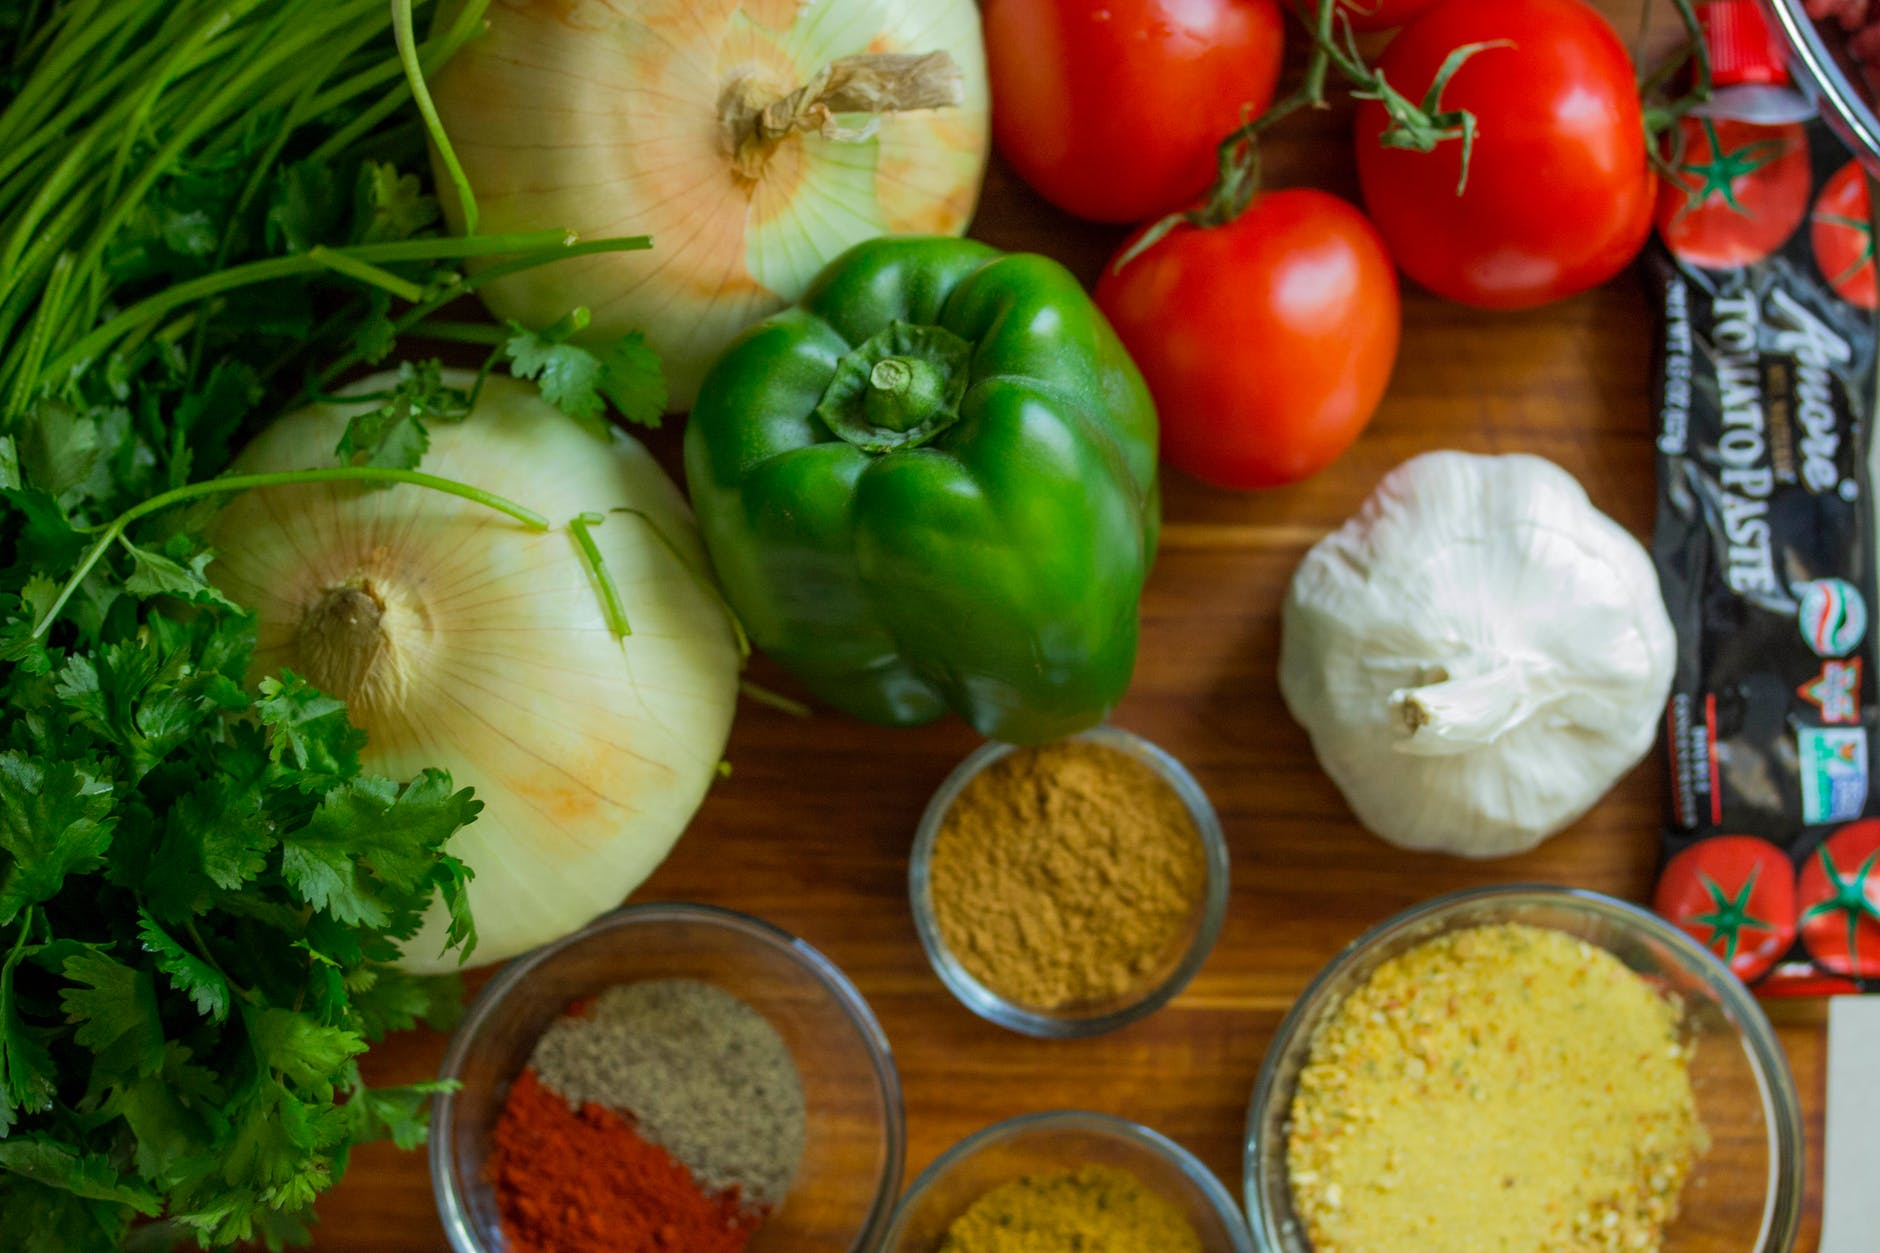 assorted vegetables and spices on wood surface